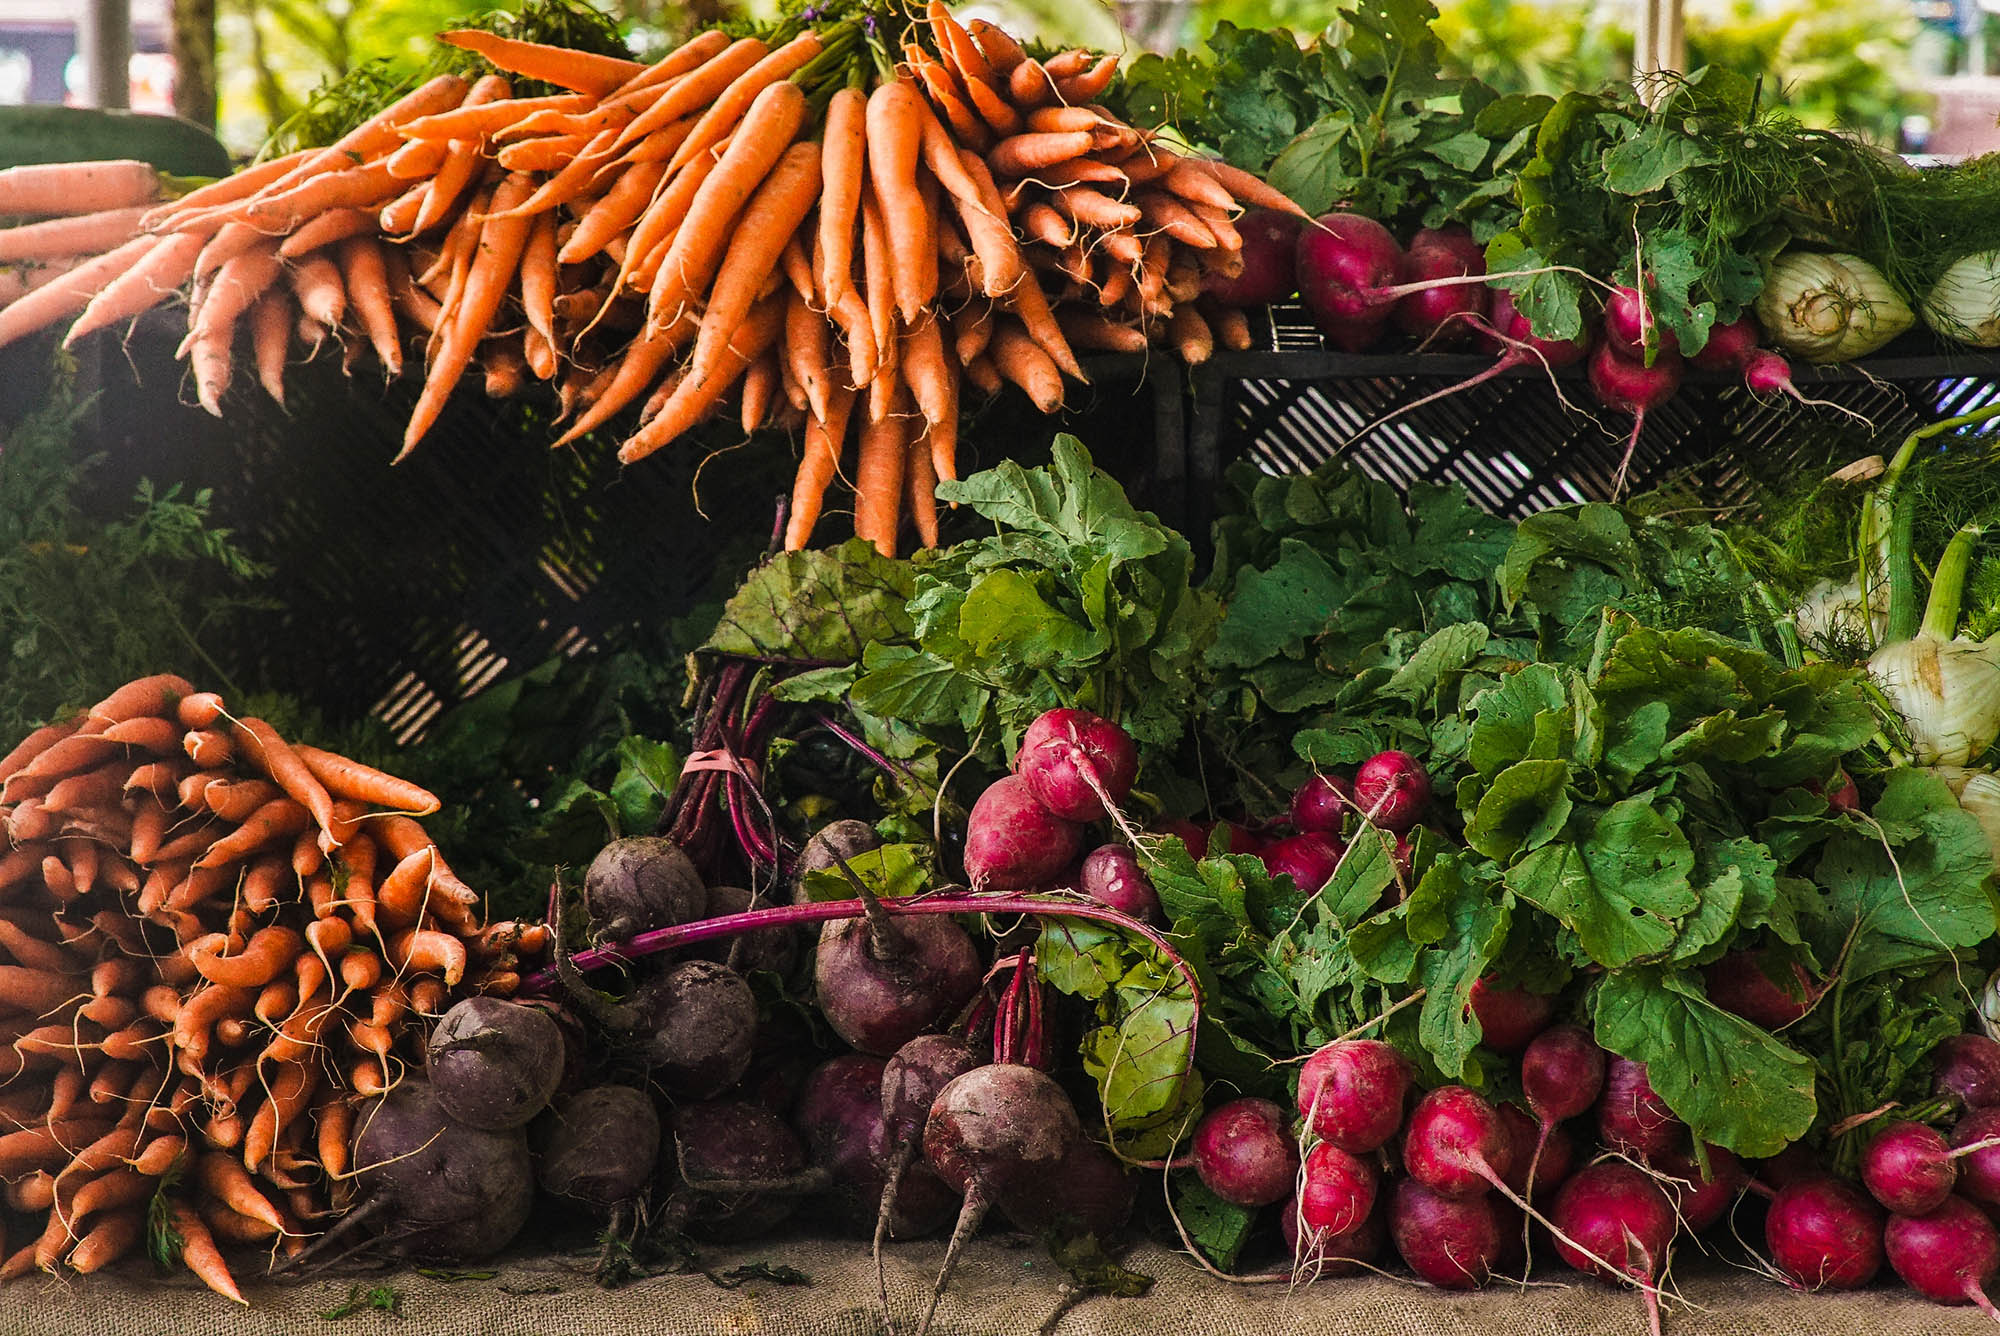 root vegetables at the market